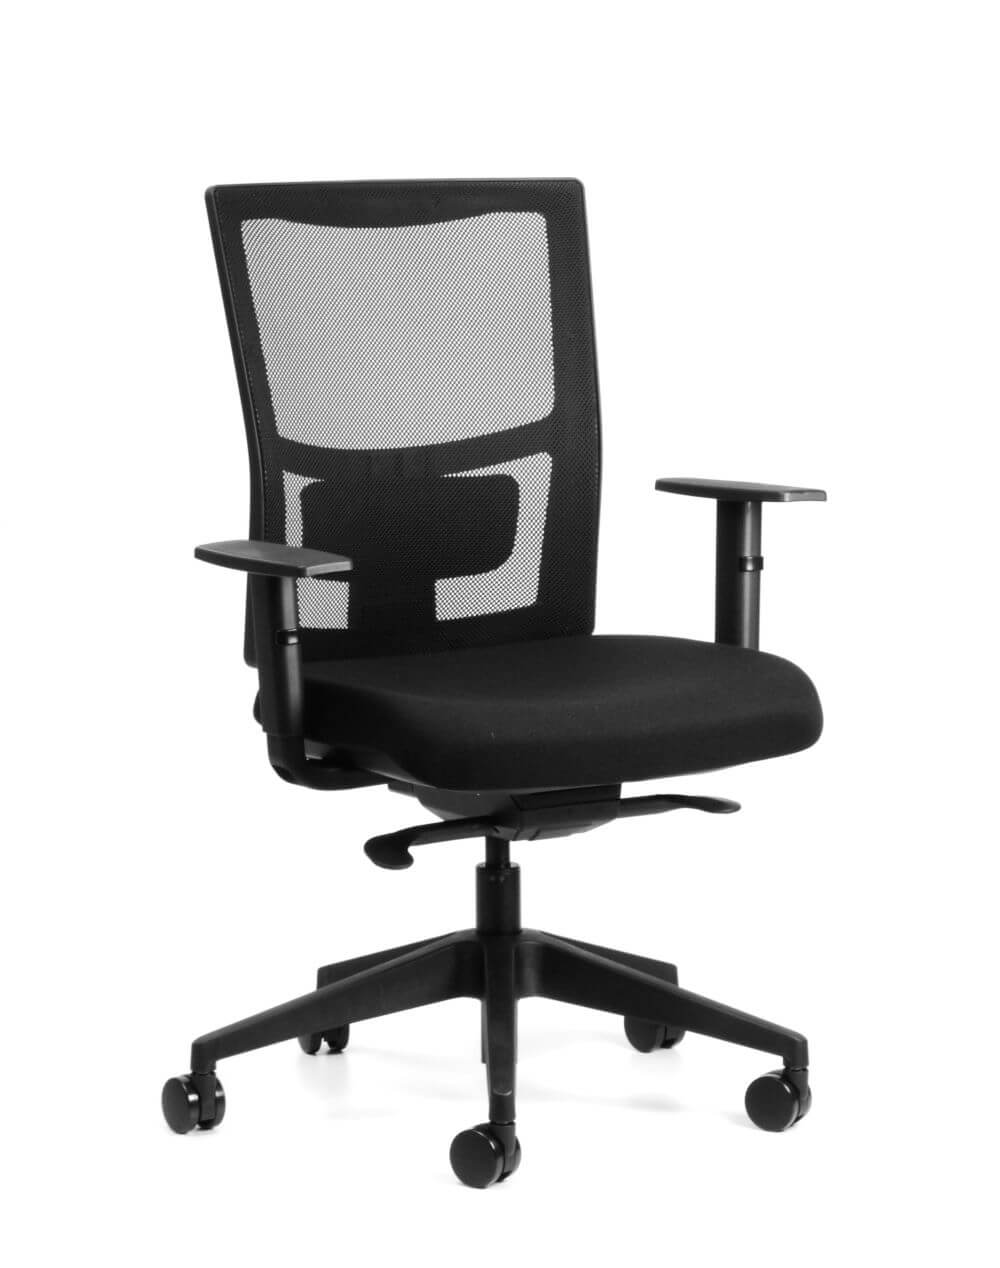 Team Sync in black mesh back, seat pad, armrests and 5 star base, front 45 view